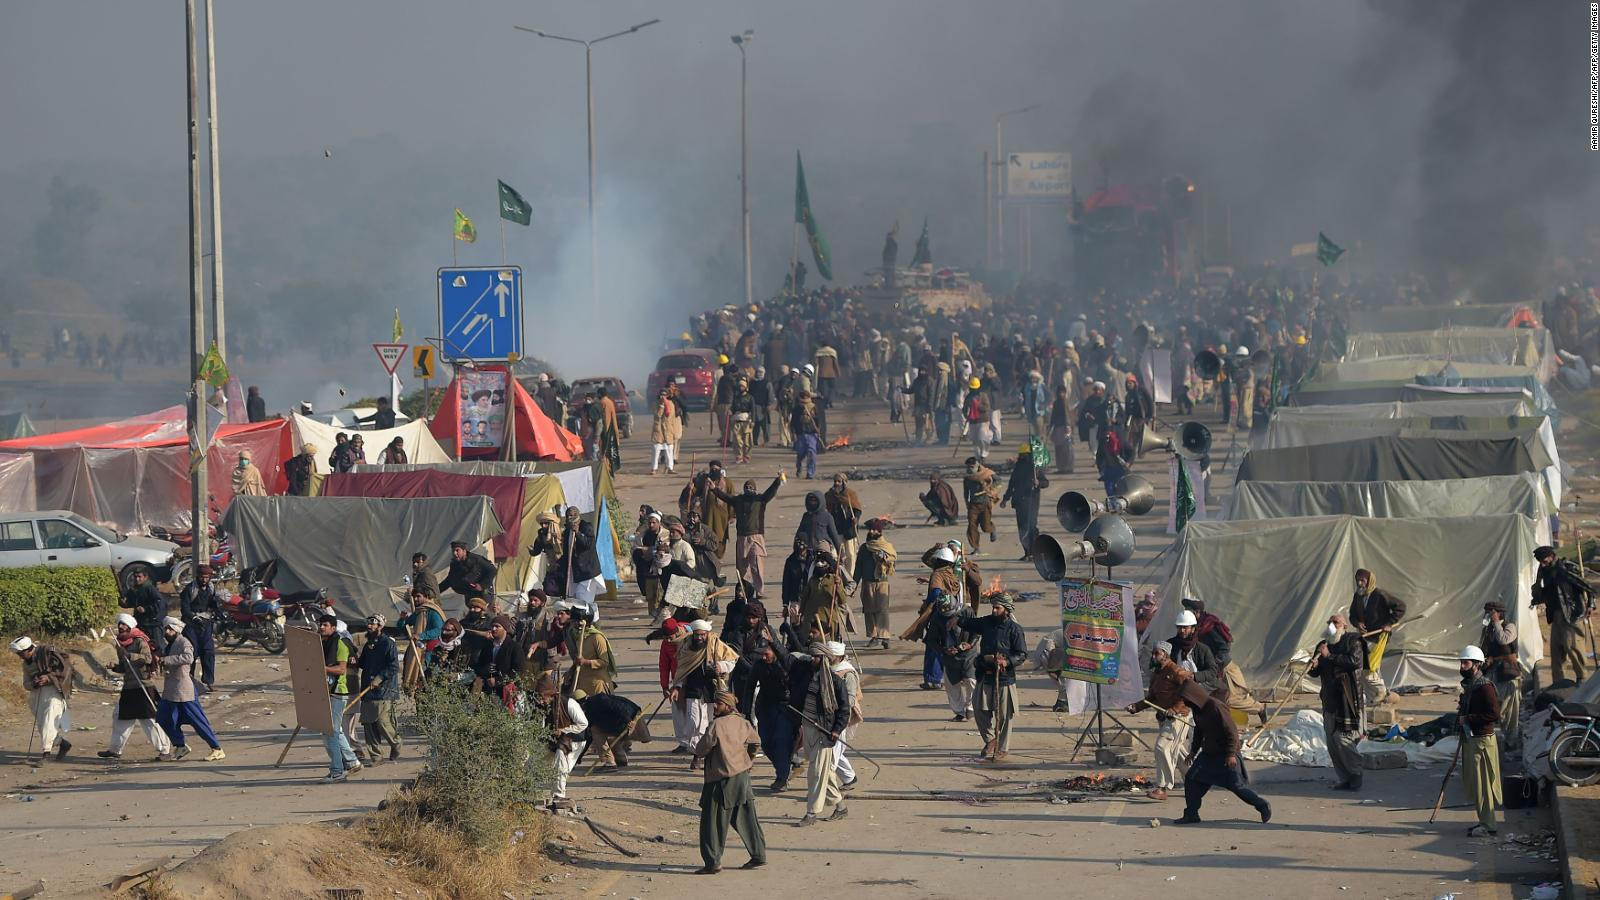 2 dead, 250+ injured in Pakistan as police try to clear massive protests